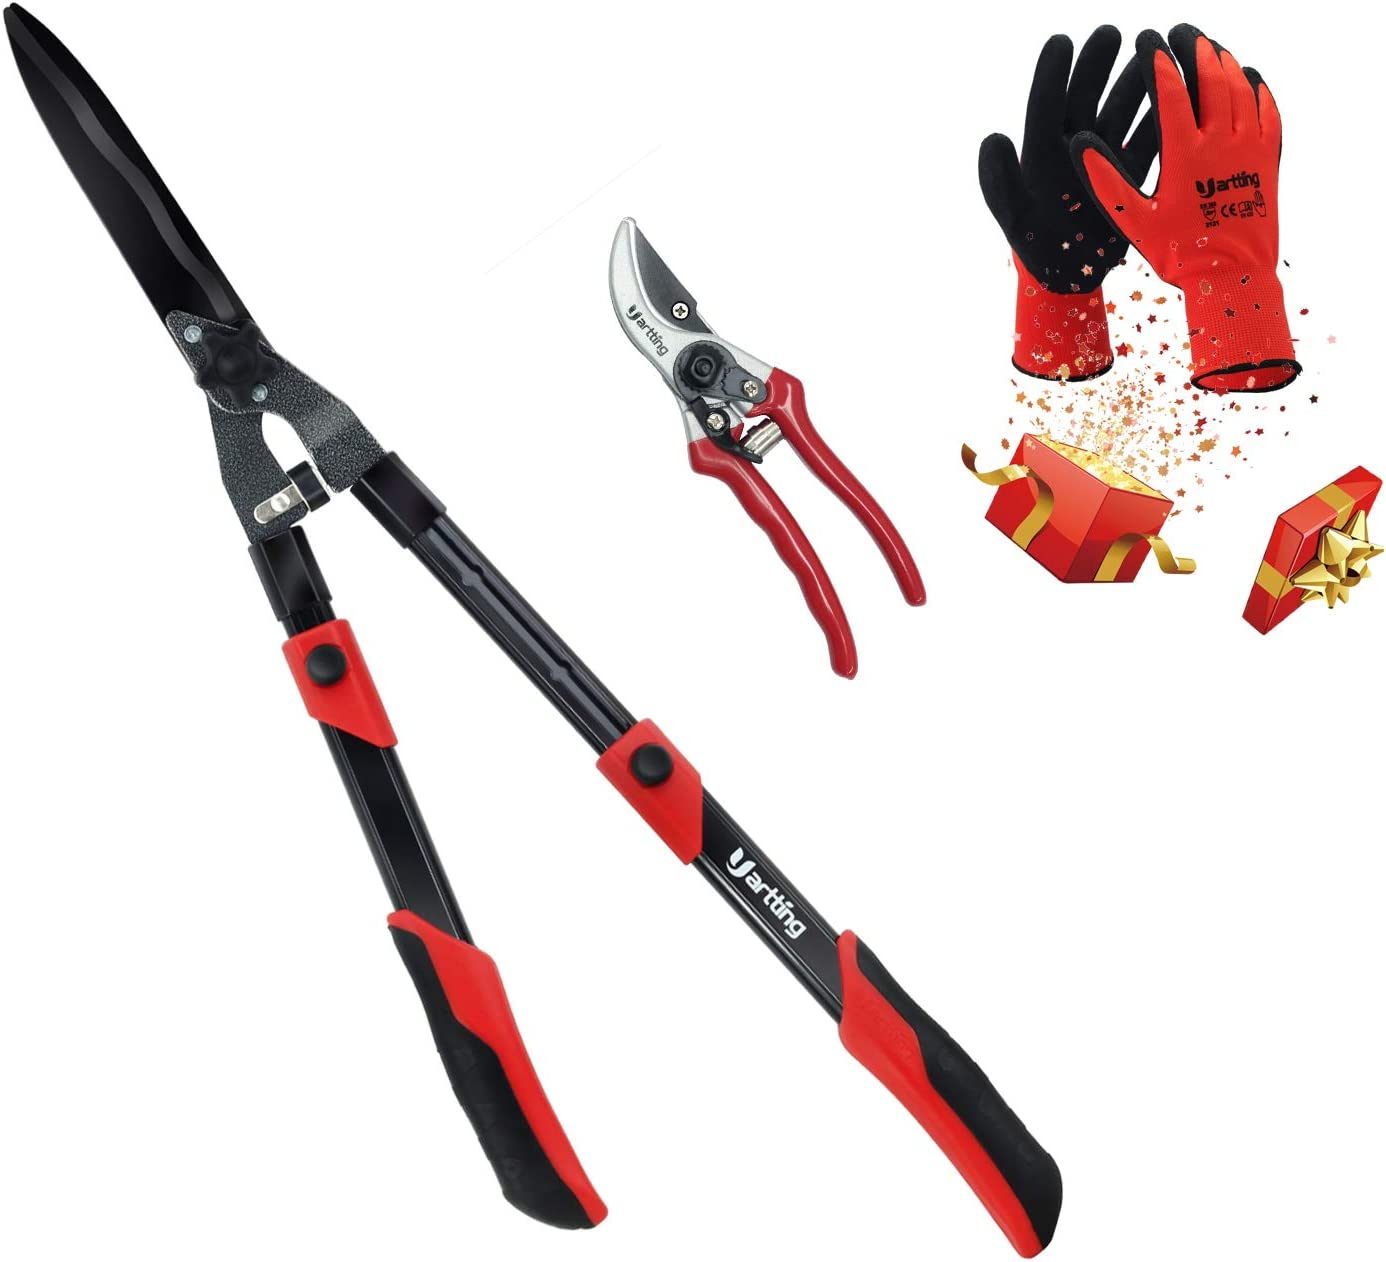 Yartting Extendable Hedge Shears & Sharp Hand Pruner Set, Garden Hedge Clippers with 3 Layers Telescoping Aluminum Lightweight Handle, for Trimming Borders, Boxwood, and Bushes. (Black)